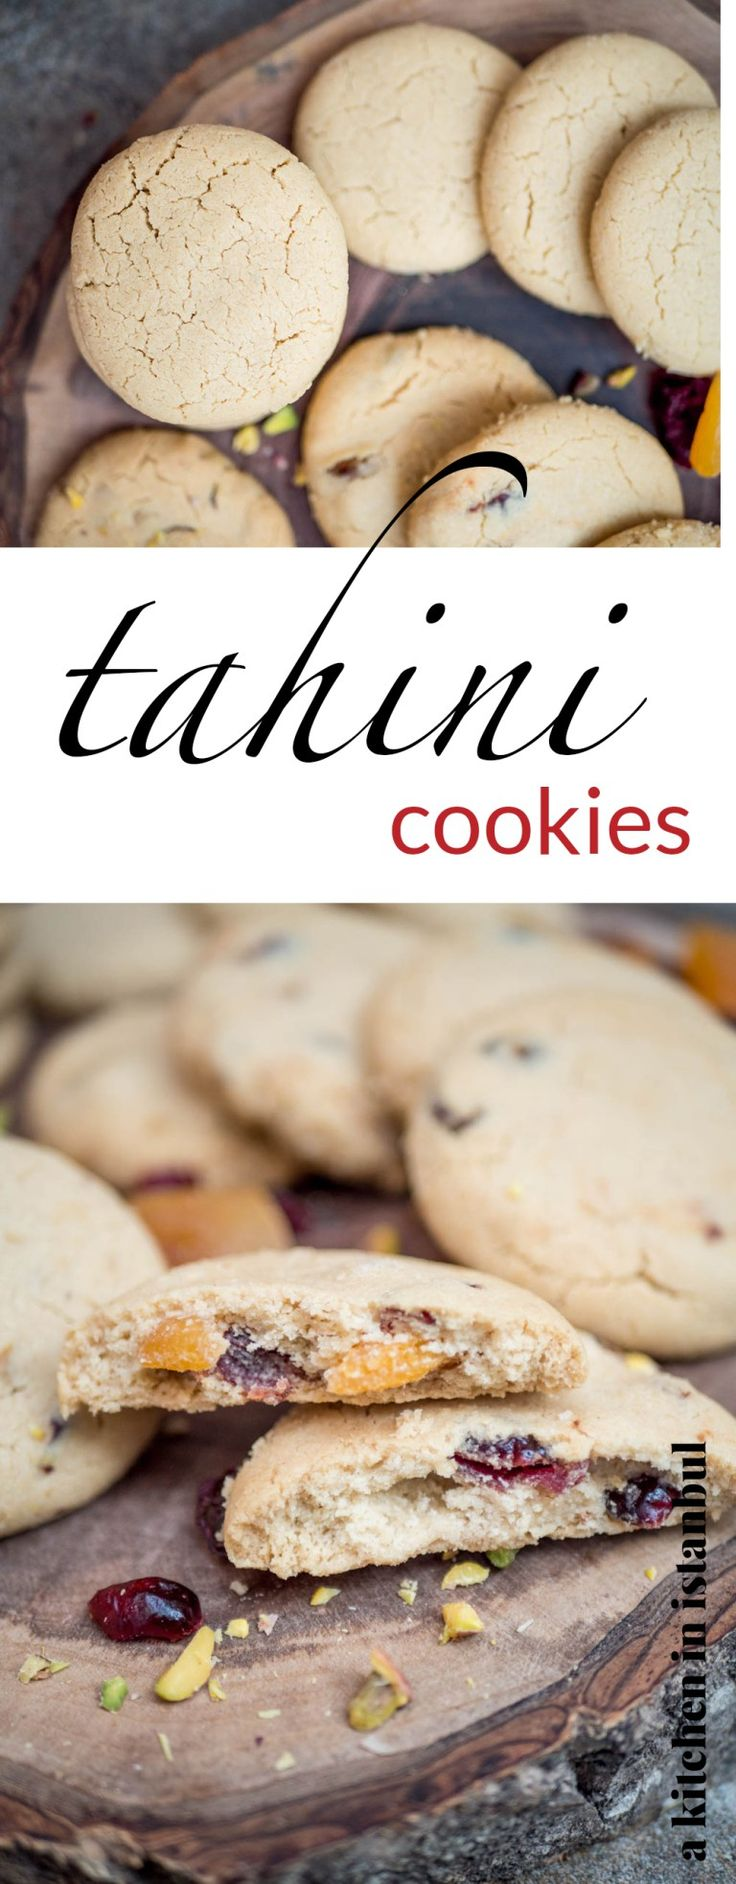 Tahini cookies – recipe / A kitchen in Istanbul